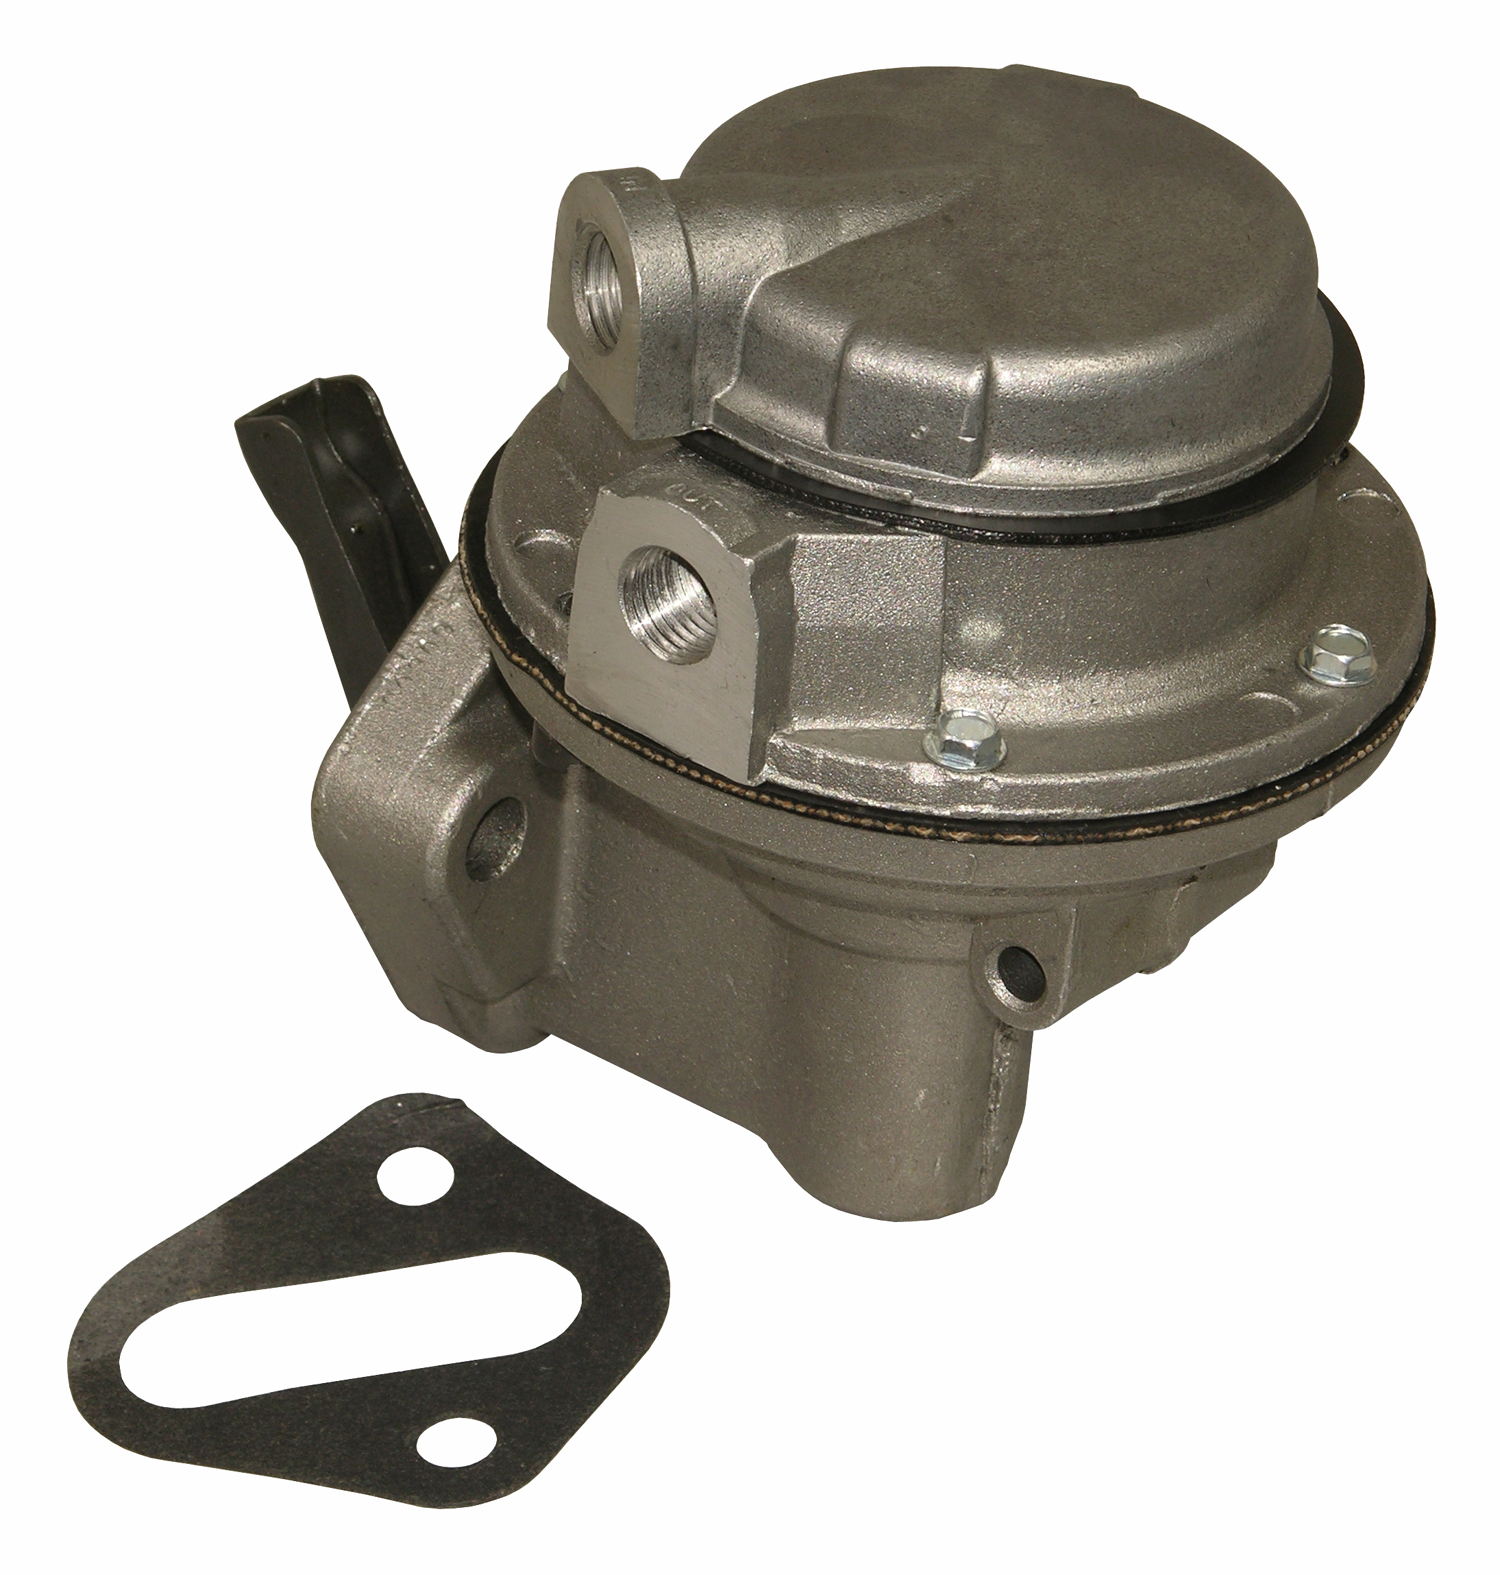 Mechanical Fuel Pump Airtex 9084